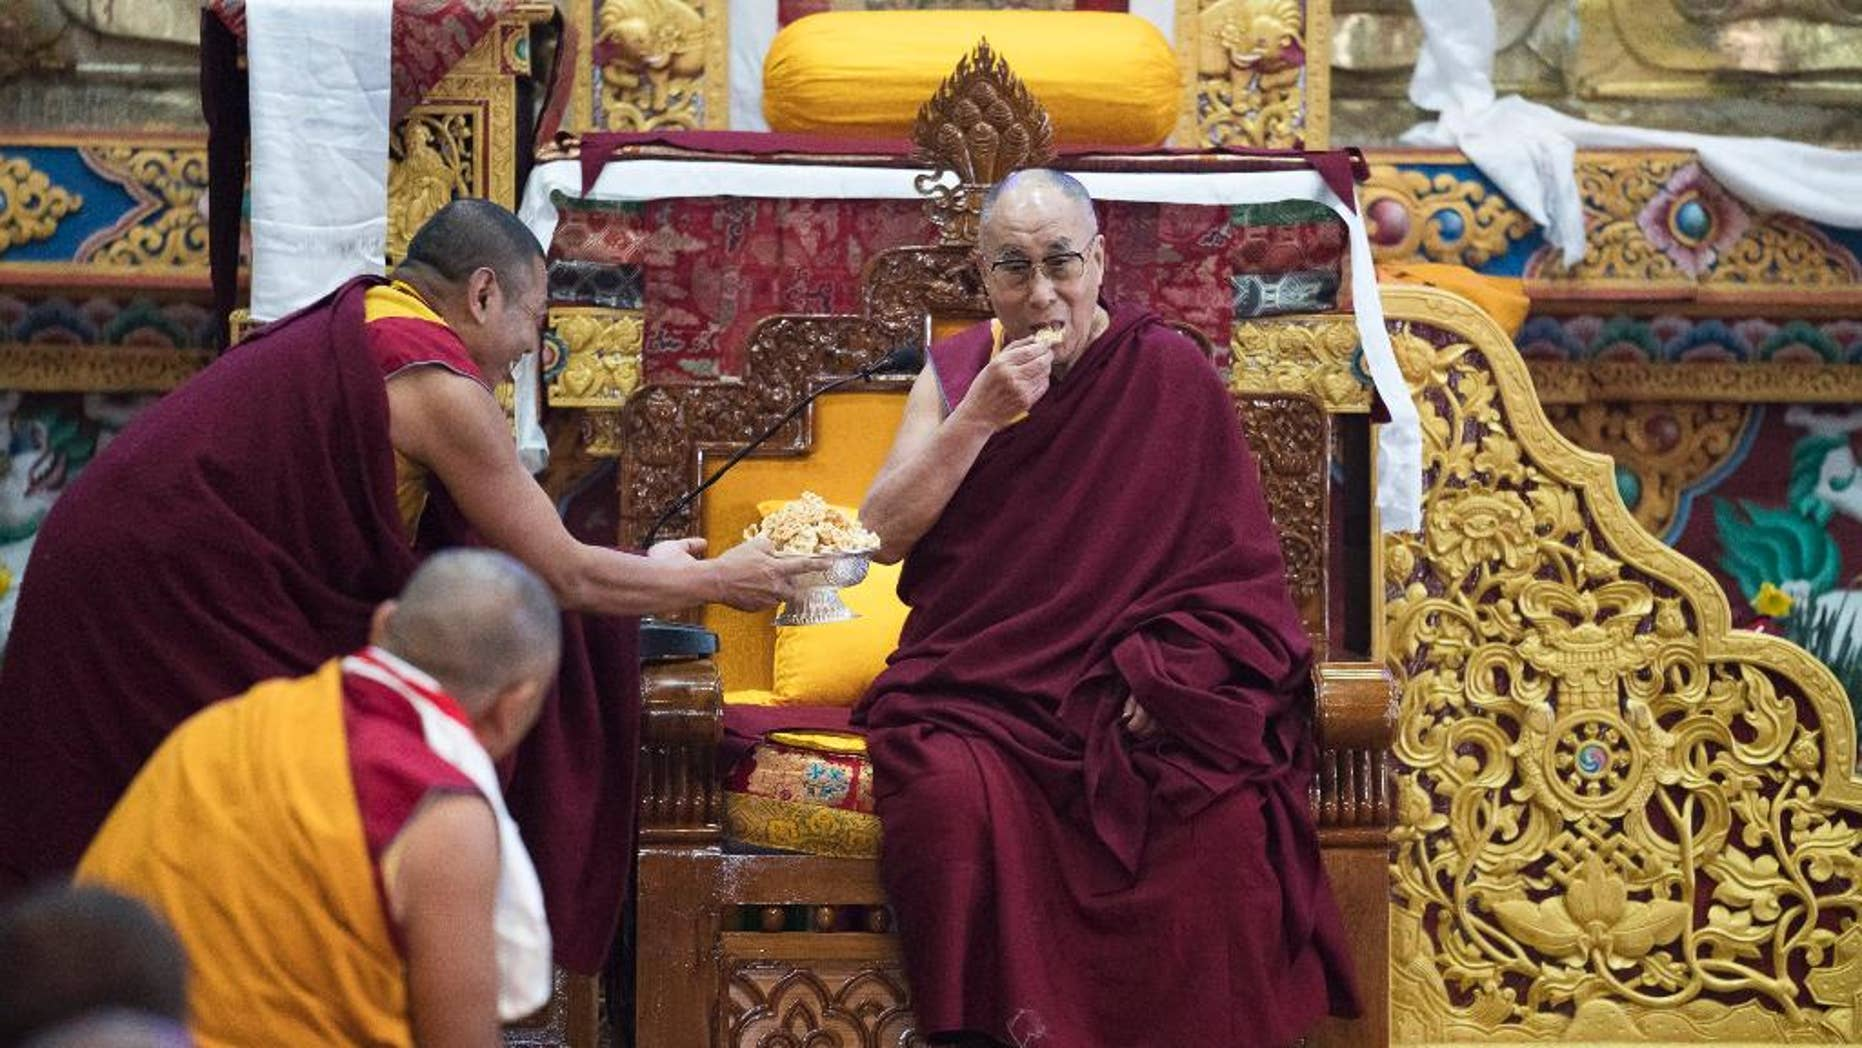 """Tibetan spiritual leader the Dalai Lama eats traditional Tibetan cookies upon arrival at the monastery in Tawang, in the northeastern Indian state of Arunachal Pradesh, Friday, April 7, 2017. The visit to Arunachal Pradesh, which China also claims as its territory, has raised tensions between the nuclear-armed Asian neighbors. China's Foreign Ministry has said the visit """"severely harms China's interests and the China-India relationship,"""" while India has cautioned Beijing to stay out of its internal affairs. (AP Photo/ Tenzin Choejor)"""